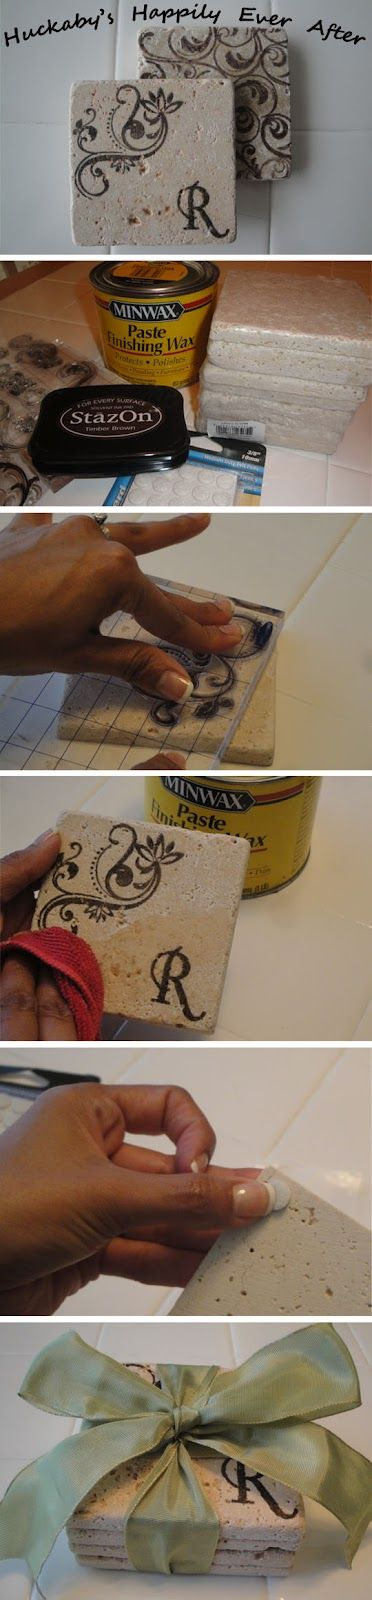 Cheap and Easy Stamped Coasters made from affordable Bathroom Tiles. This blog shows step-by-step how to make these. Great gift to give for house warming, bridal/wedding, Christmas, etc. So cute and useful!: Diy Coasters, Crafts Ideas, Gifts Ideas, Great Gifts, Stamps Coasters, Tile Coasters, Bathroom Tile, Wedding Gifts, Christmas Gifts